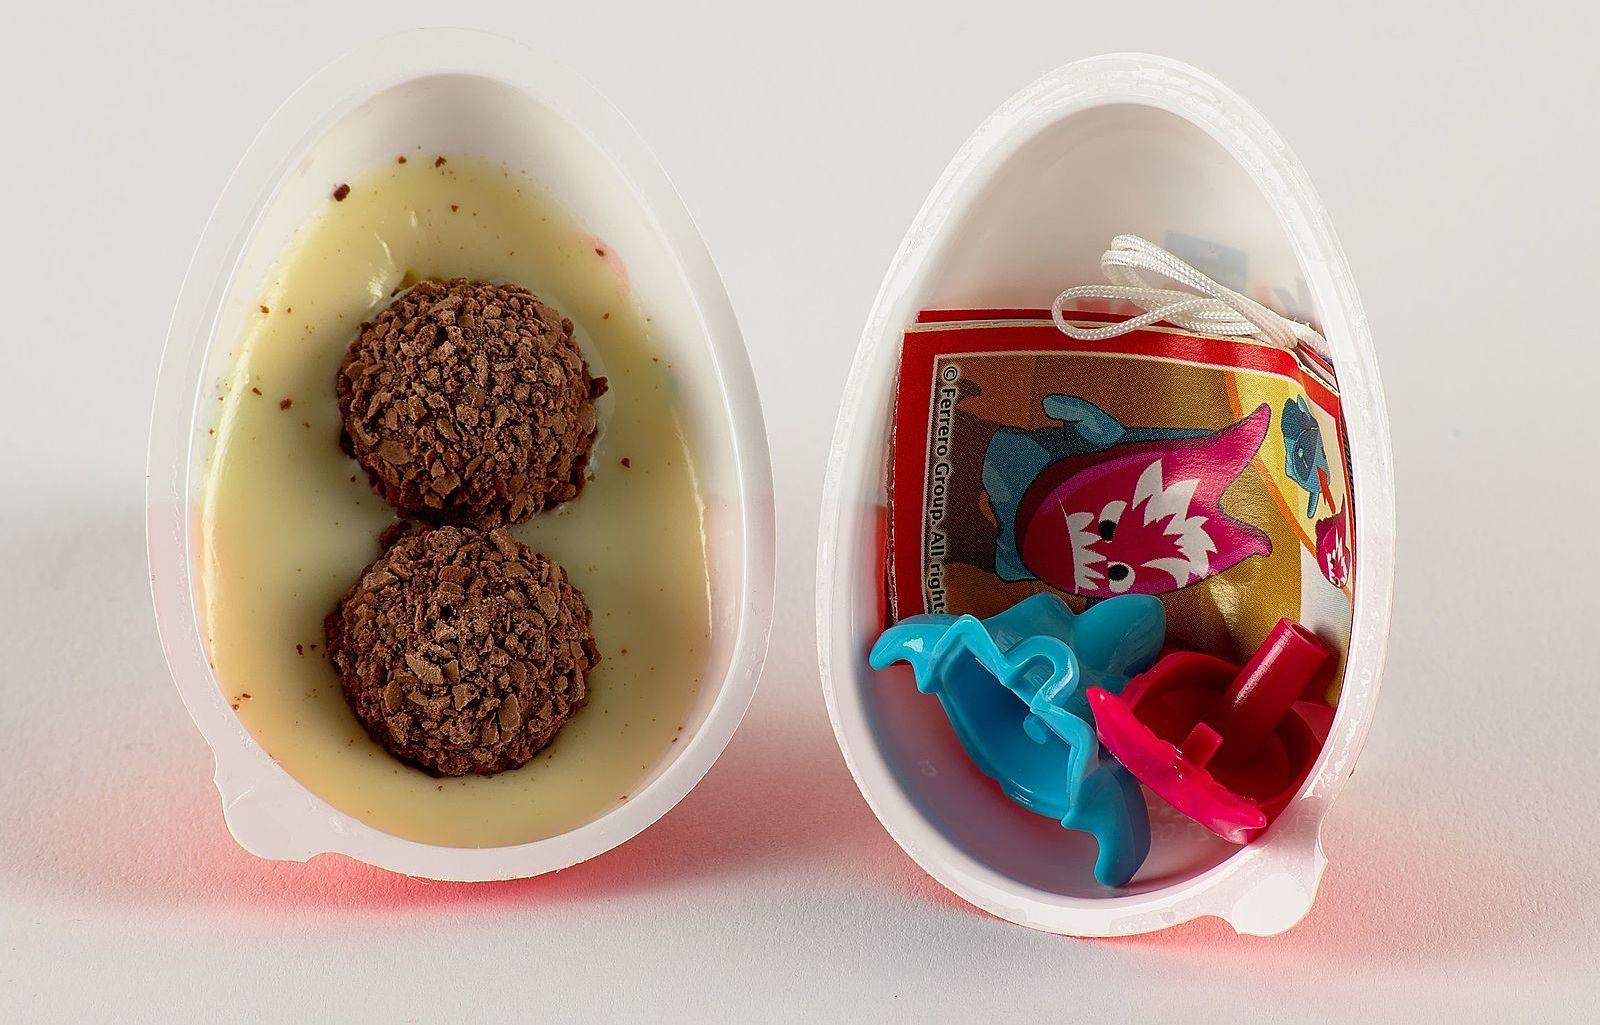 The inside of a Kinder Joy. Image from Wikimedia.